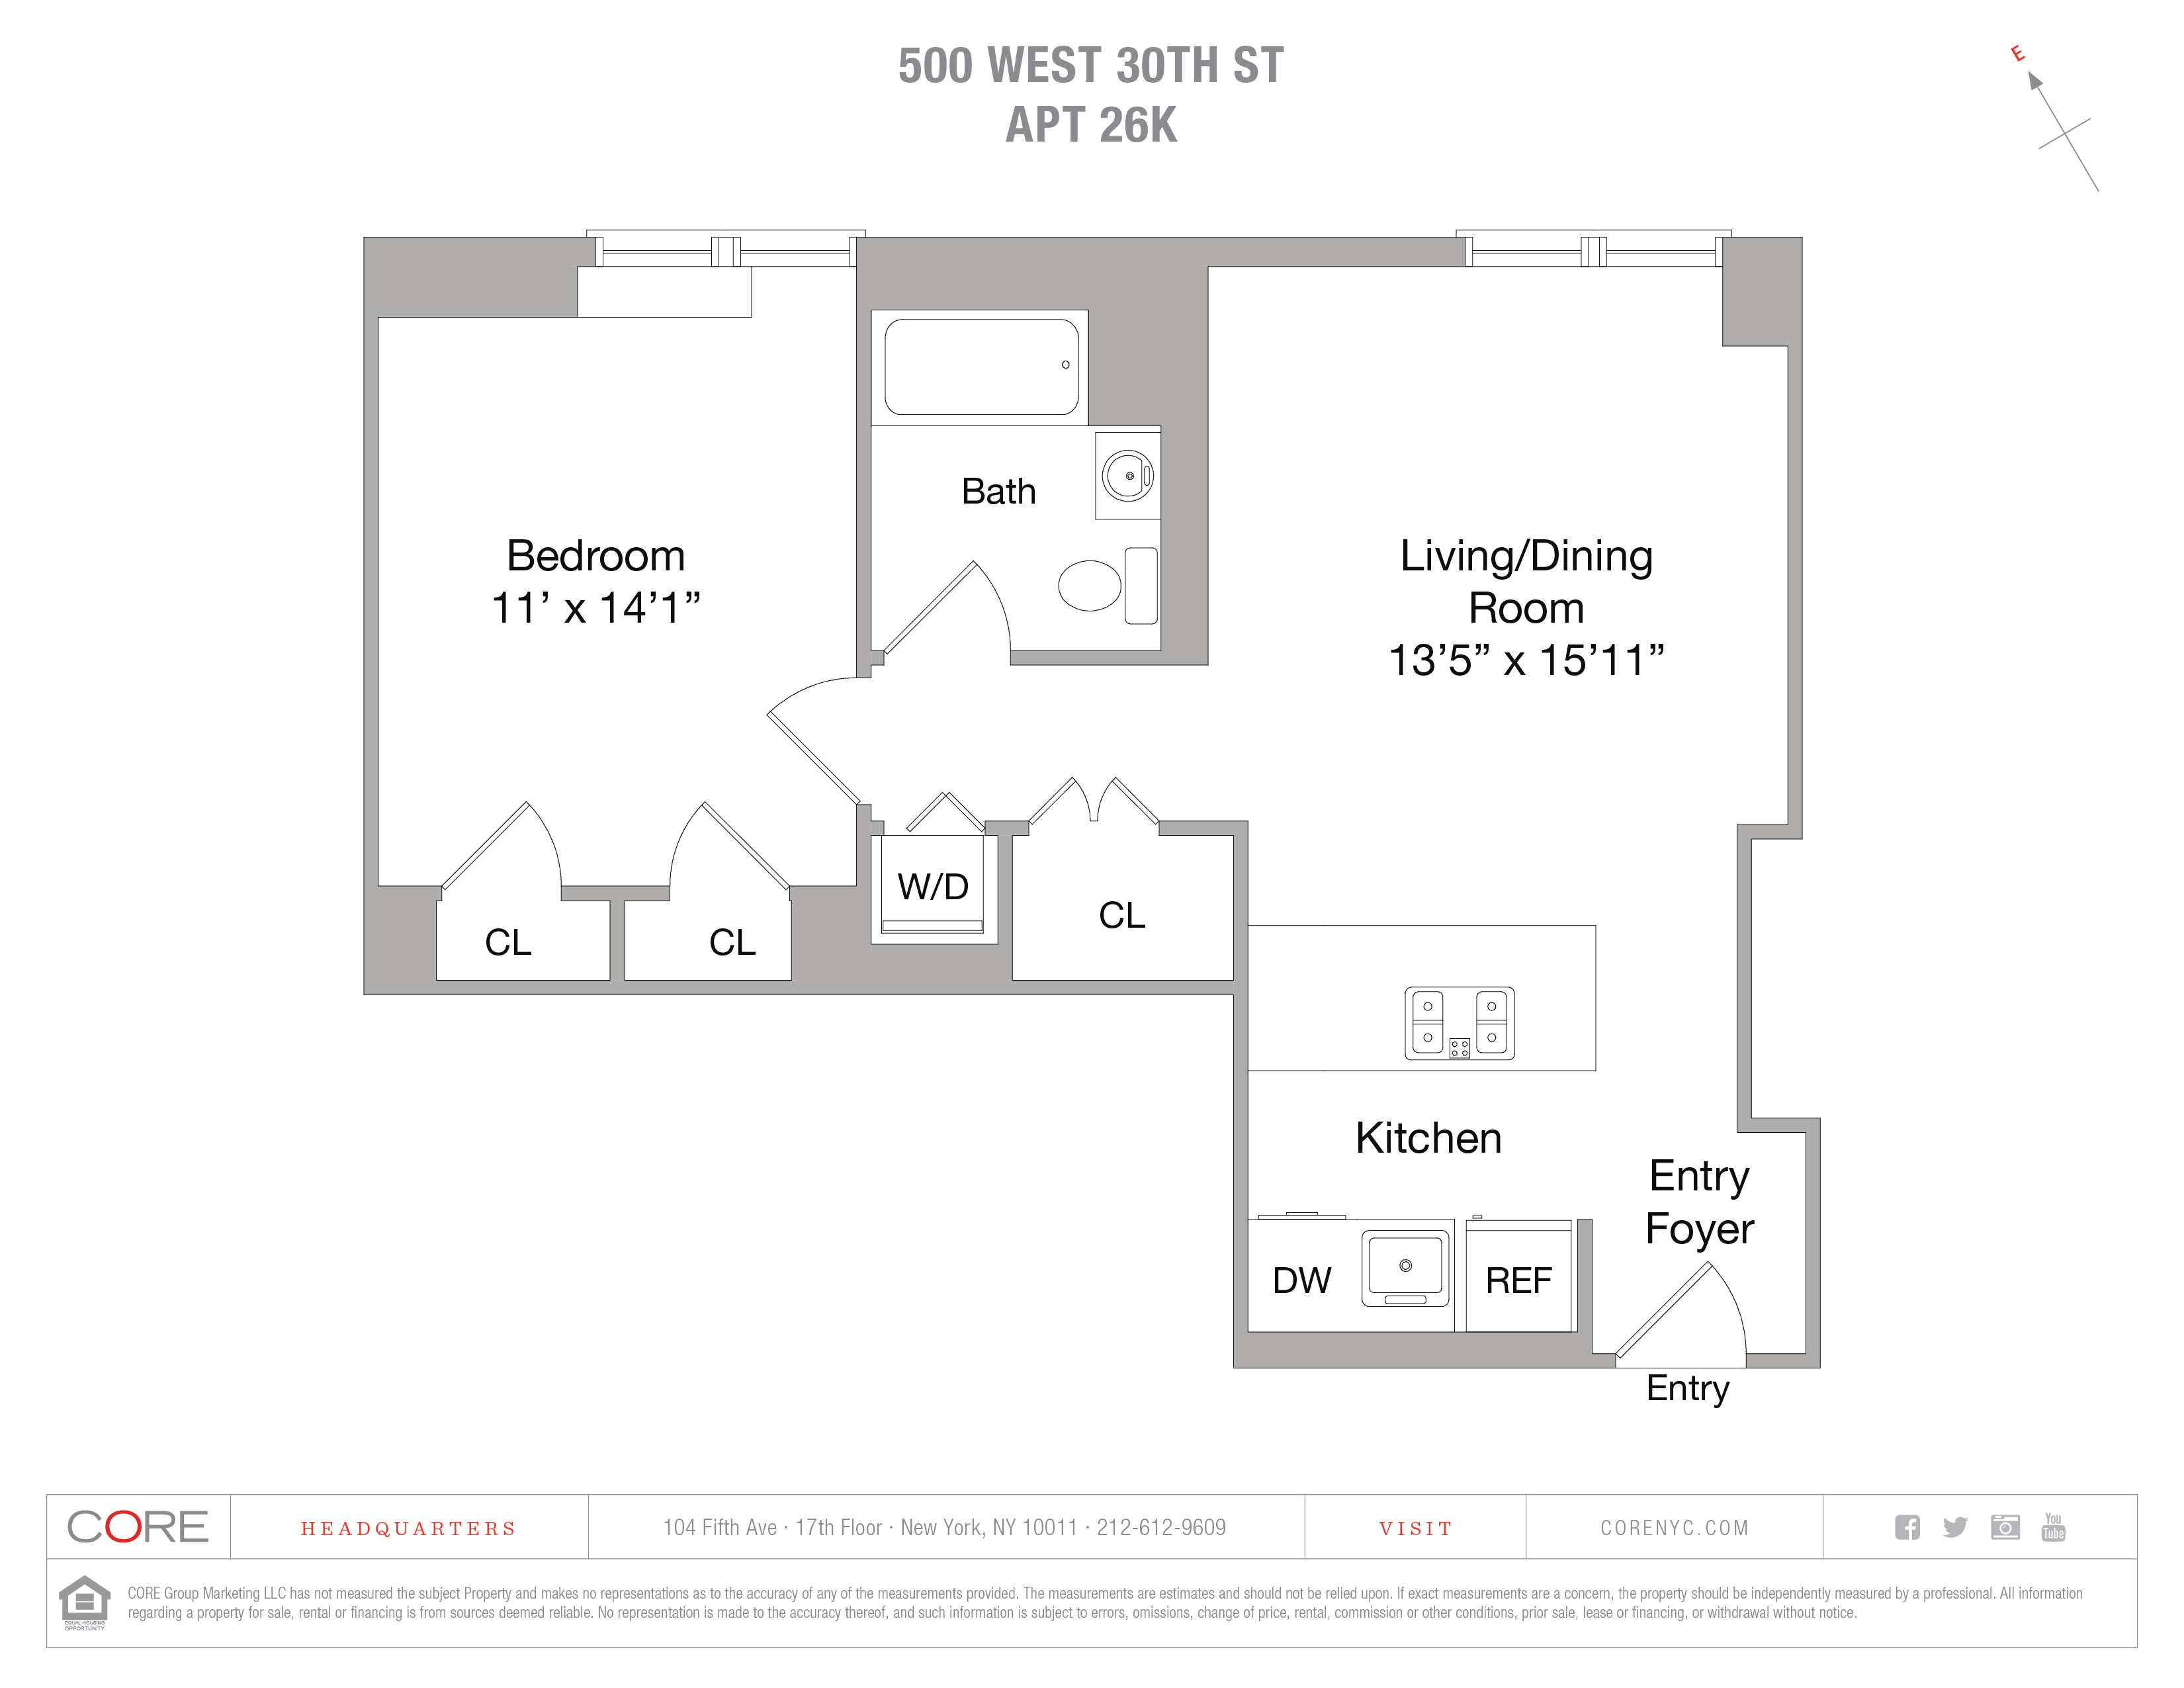 500 West 30th St. 26K, New York, NY 10001